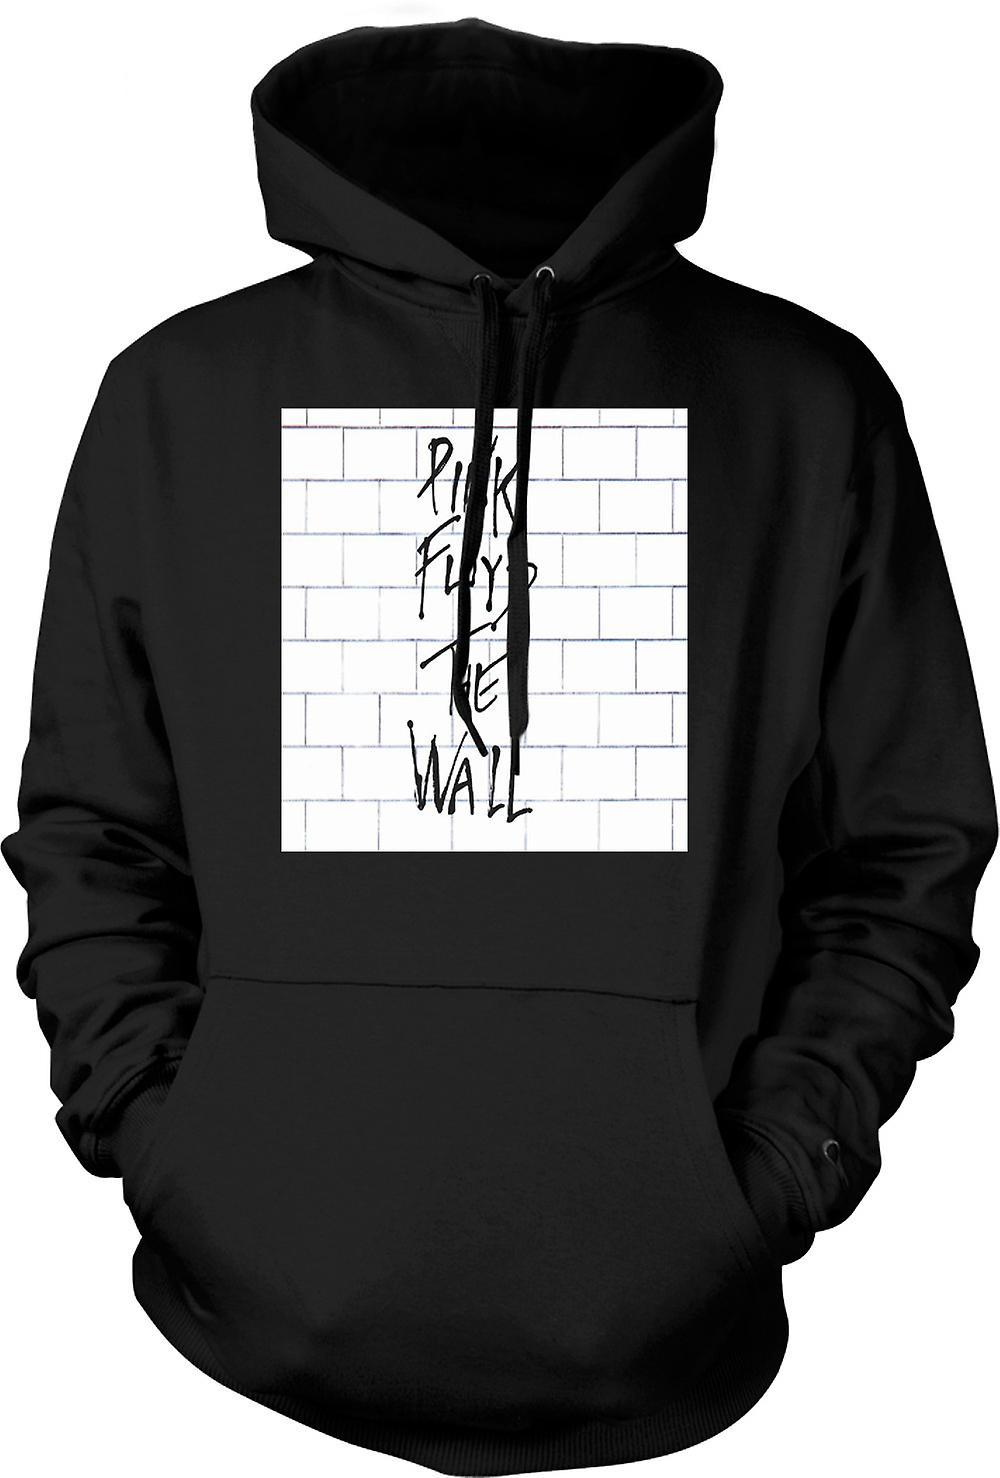 Mens Hoodie - Pink Floyd - The Wall - Album Cover